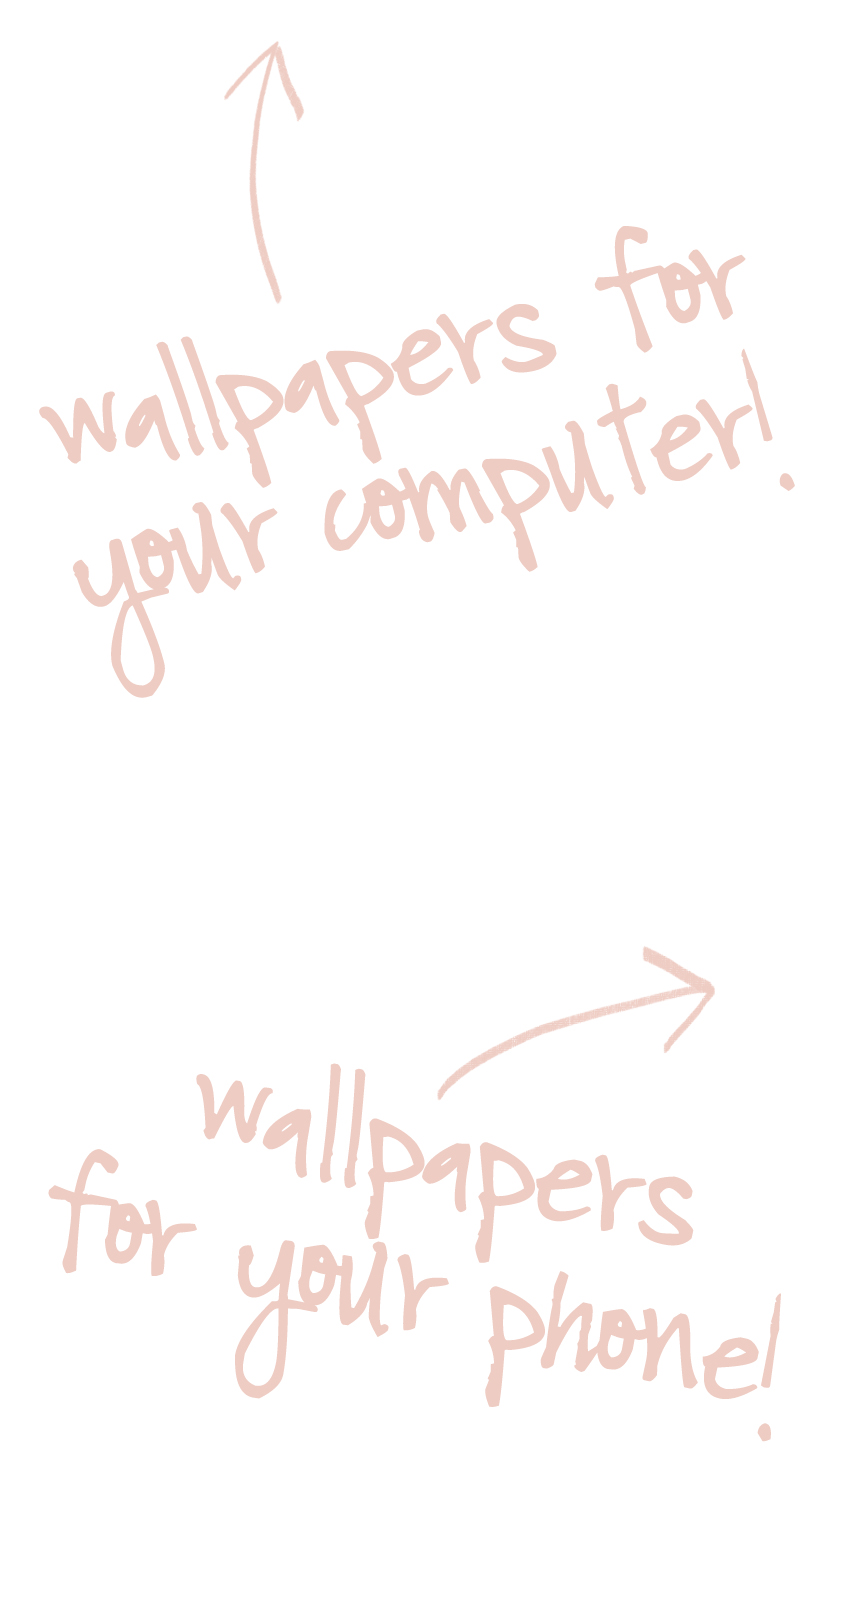 handwriting image.jpg